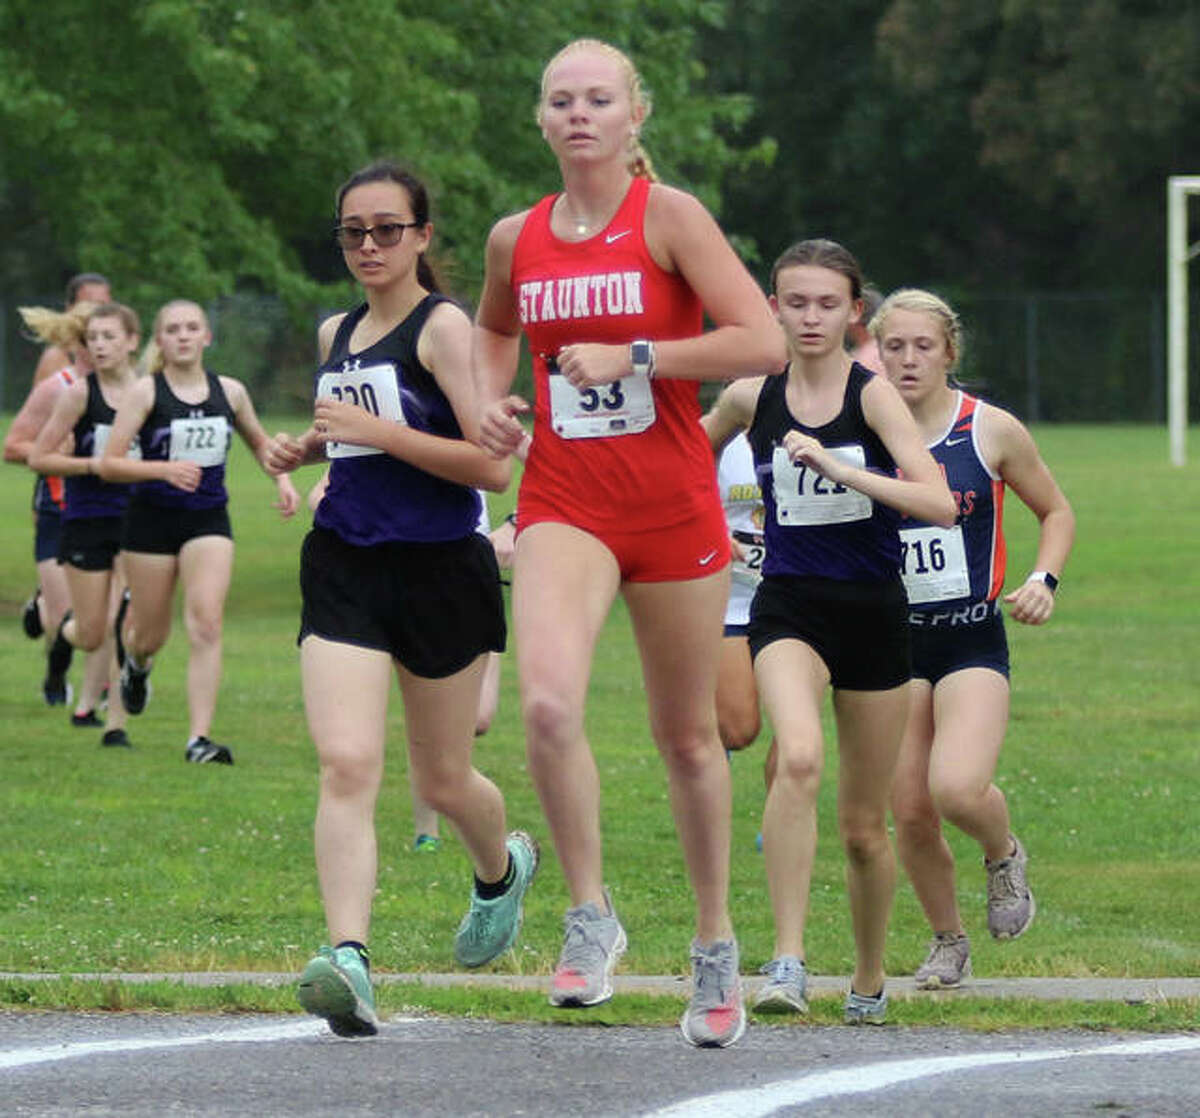 Staunton's Dana Jarden leads a pair of Litchfield runners in the first mile of the Carlinville Early Meet on Tuesday at Loveless Park. Jarden finished fifth in the race.